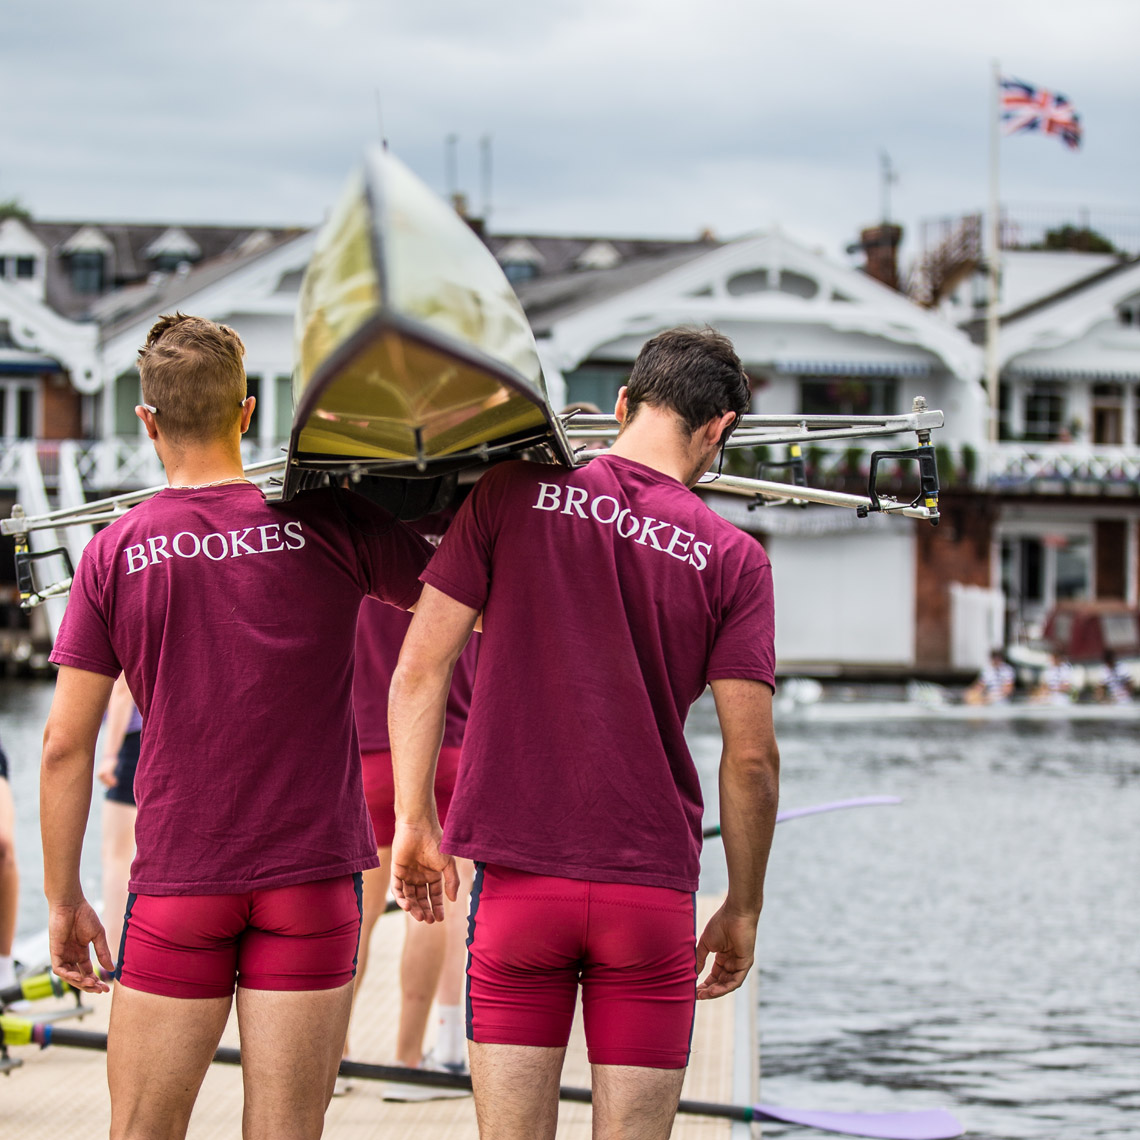 Oxford Brookes University Boat Club